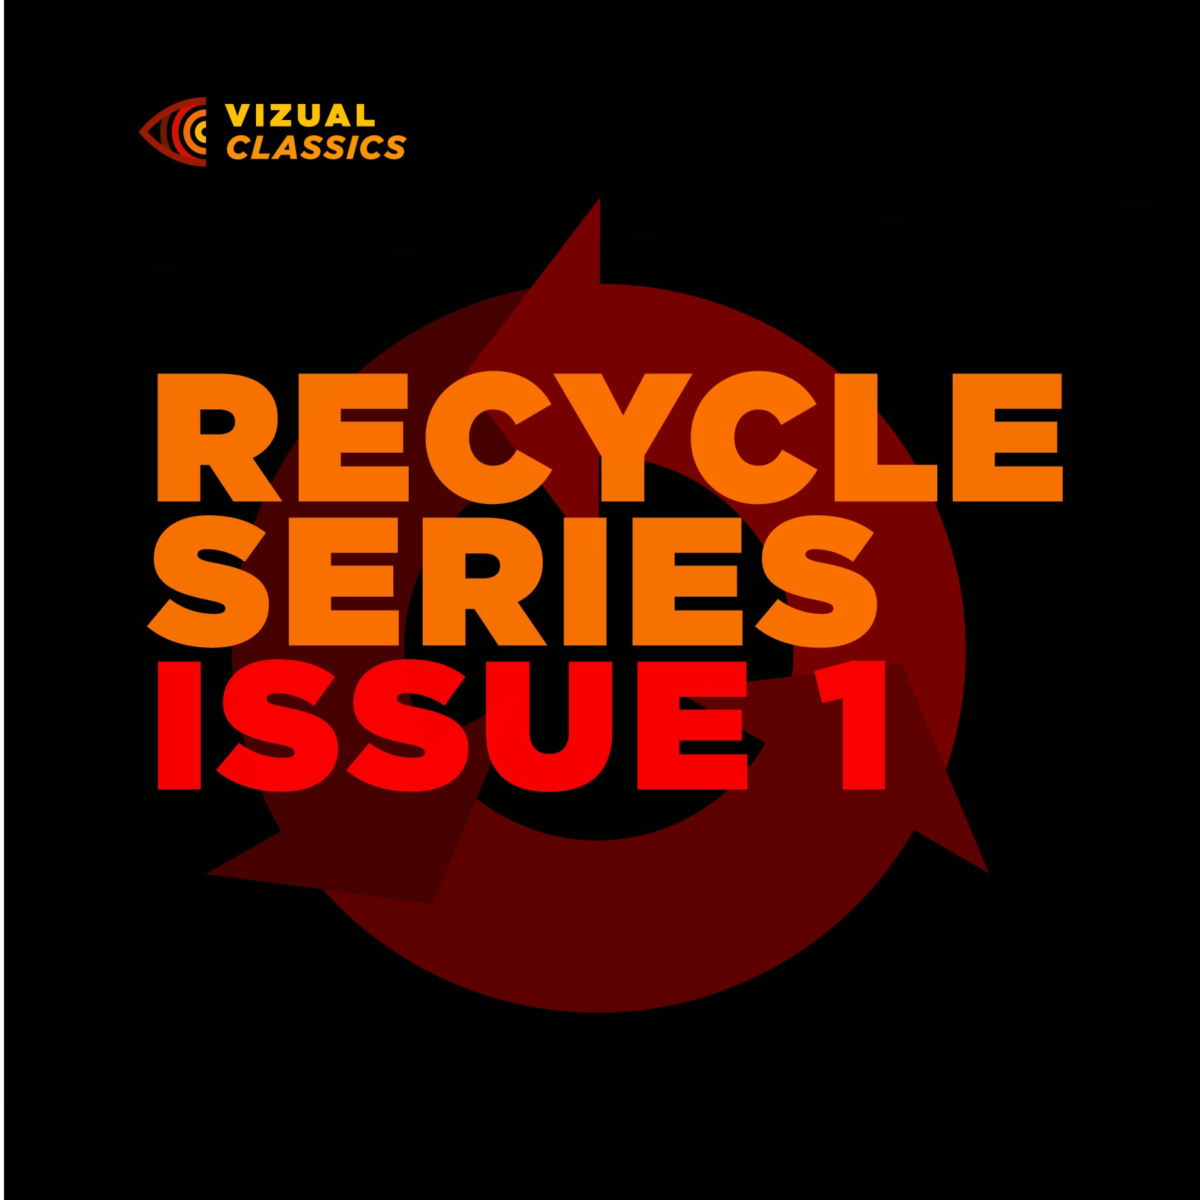 VIZCYC1 Various Artists - Recycle Series Issue 1